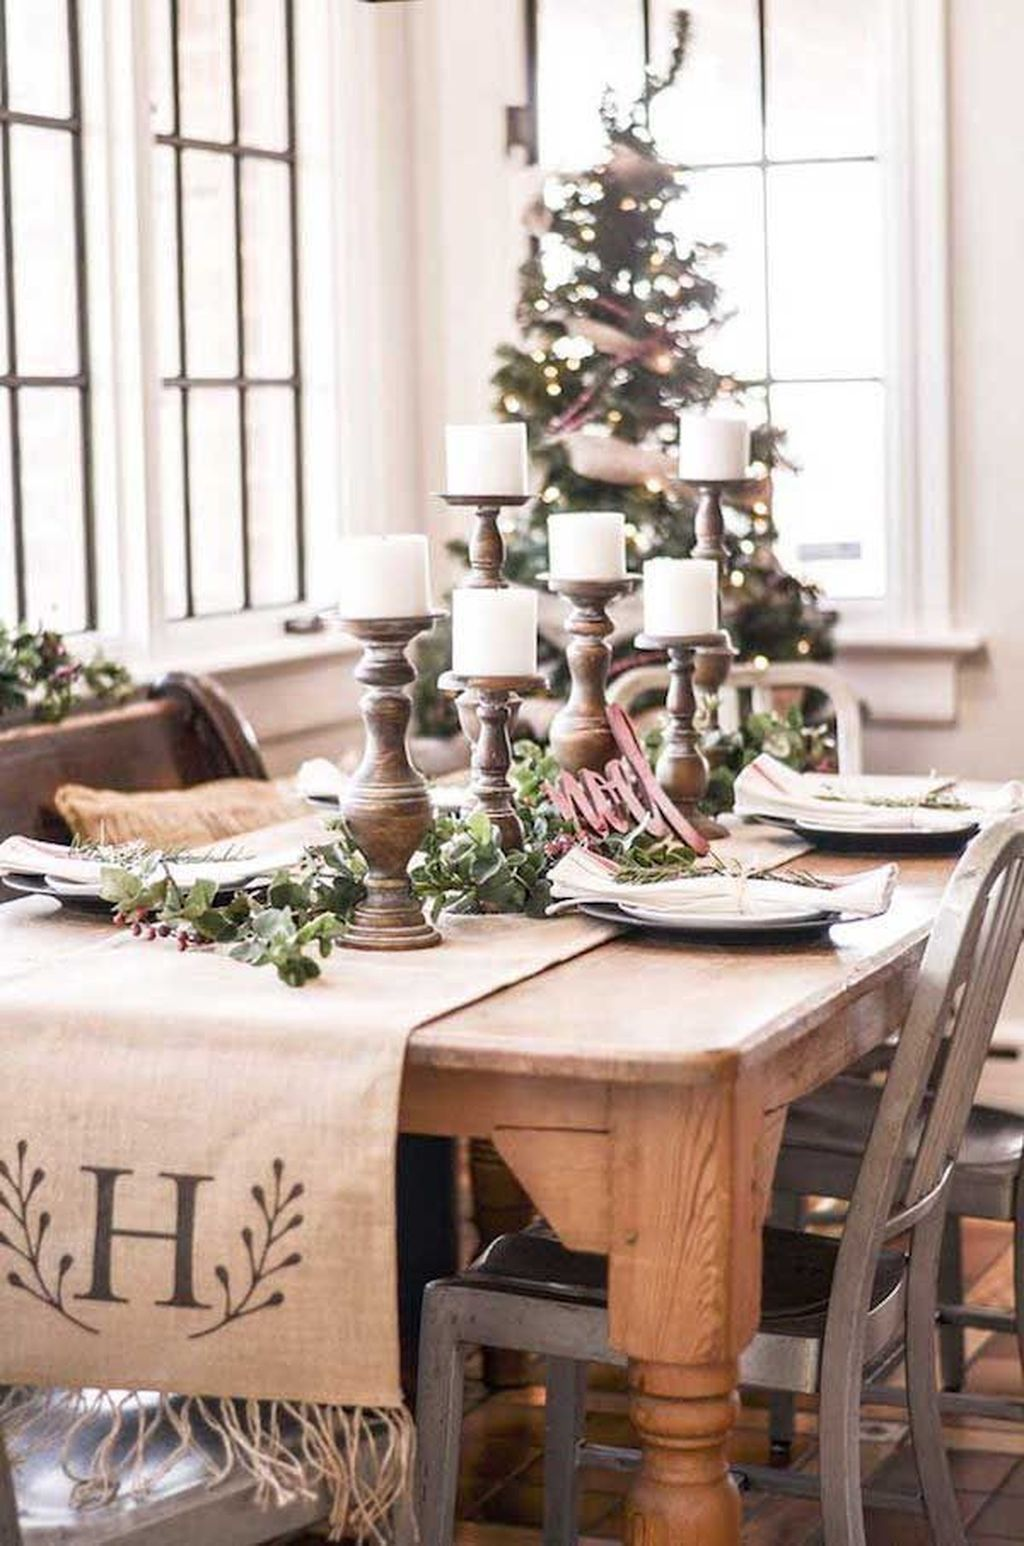 50 Smart Christmas Decorating Ideas for Your